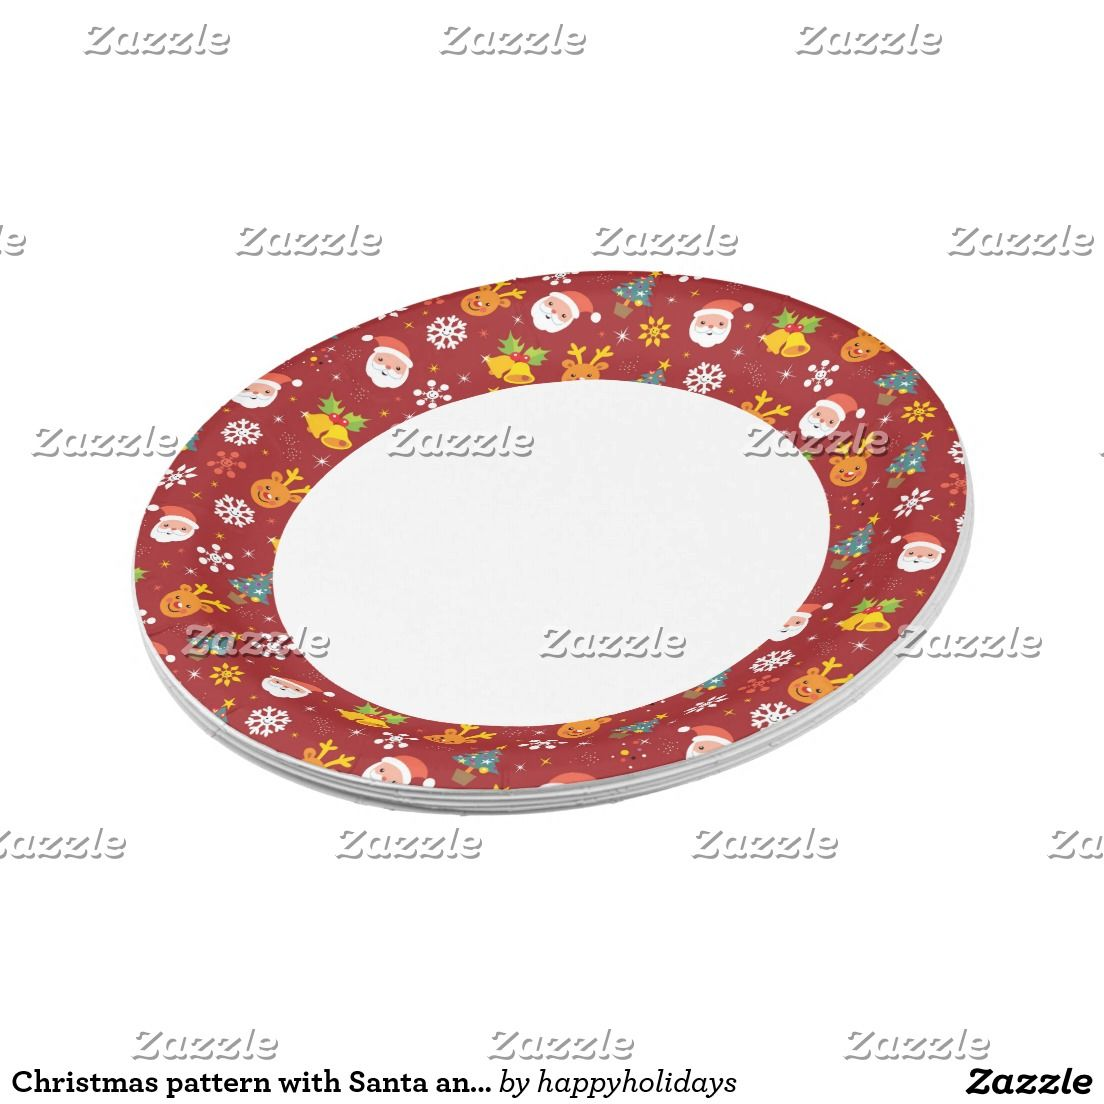 Christmas pattern with Santa and reindeer Paper Plate  sc 1 st  Pinterest & Christmas pattern with Santa and reindeer Paper Plate   Christmas ...